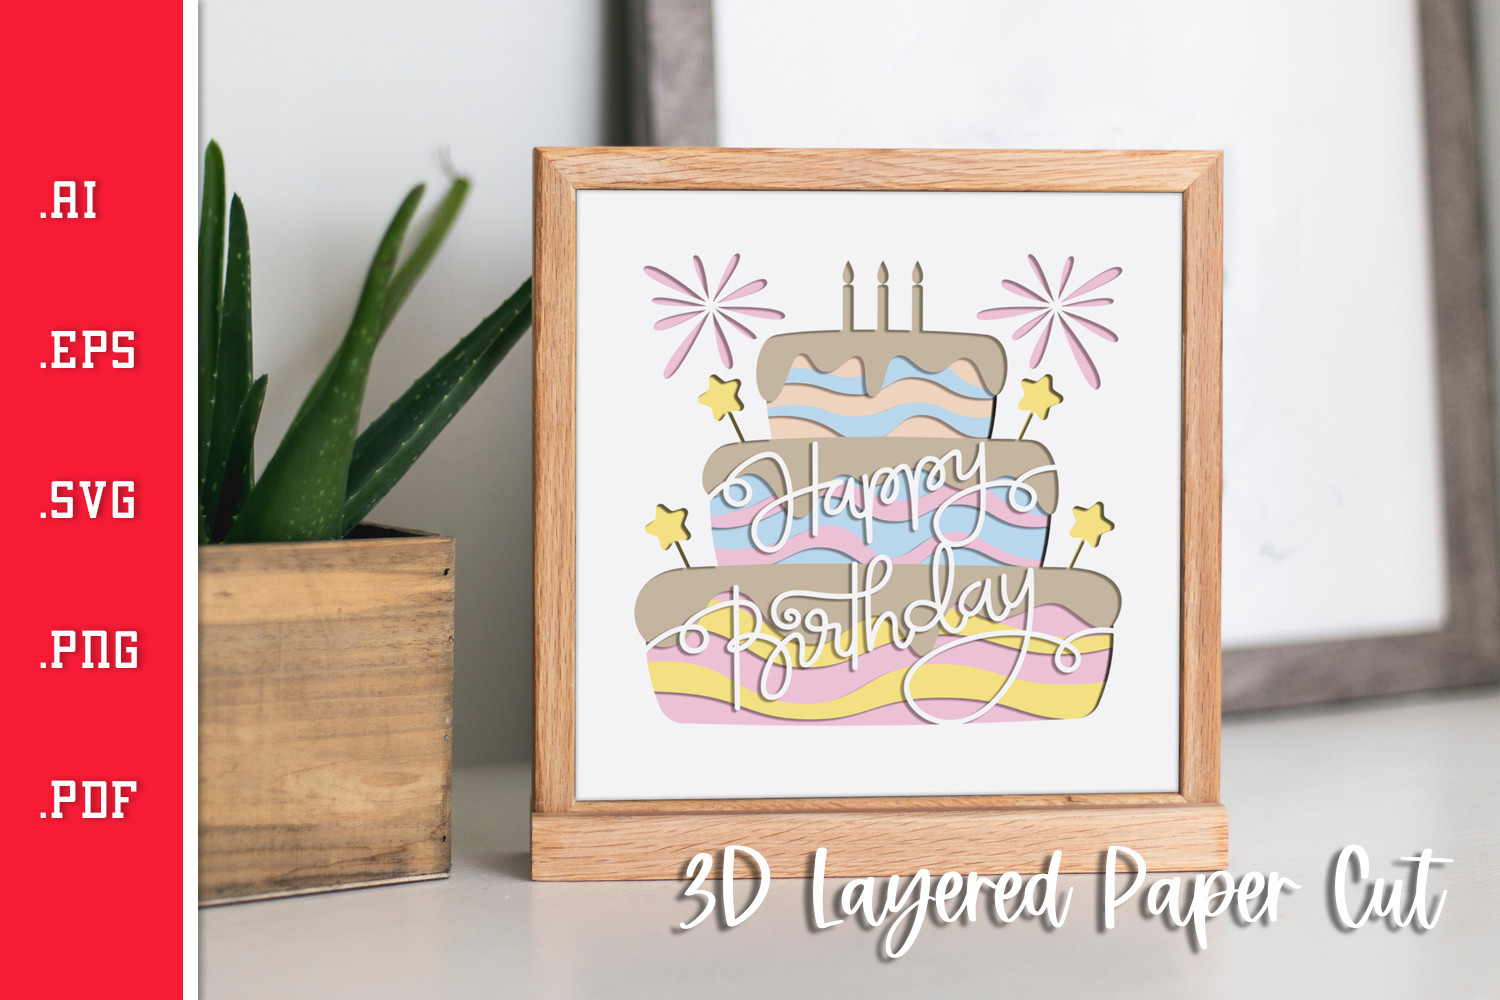 Happy Birthday Cake 3D Layered Paper Cut SVG File